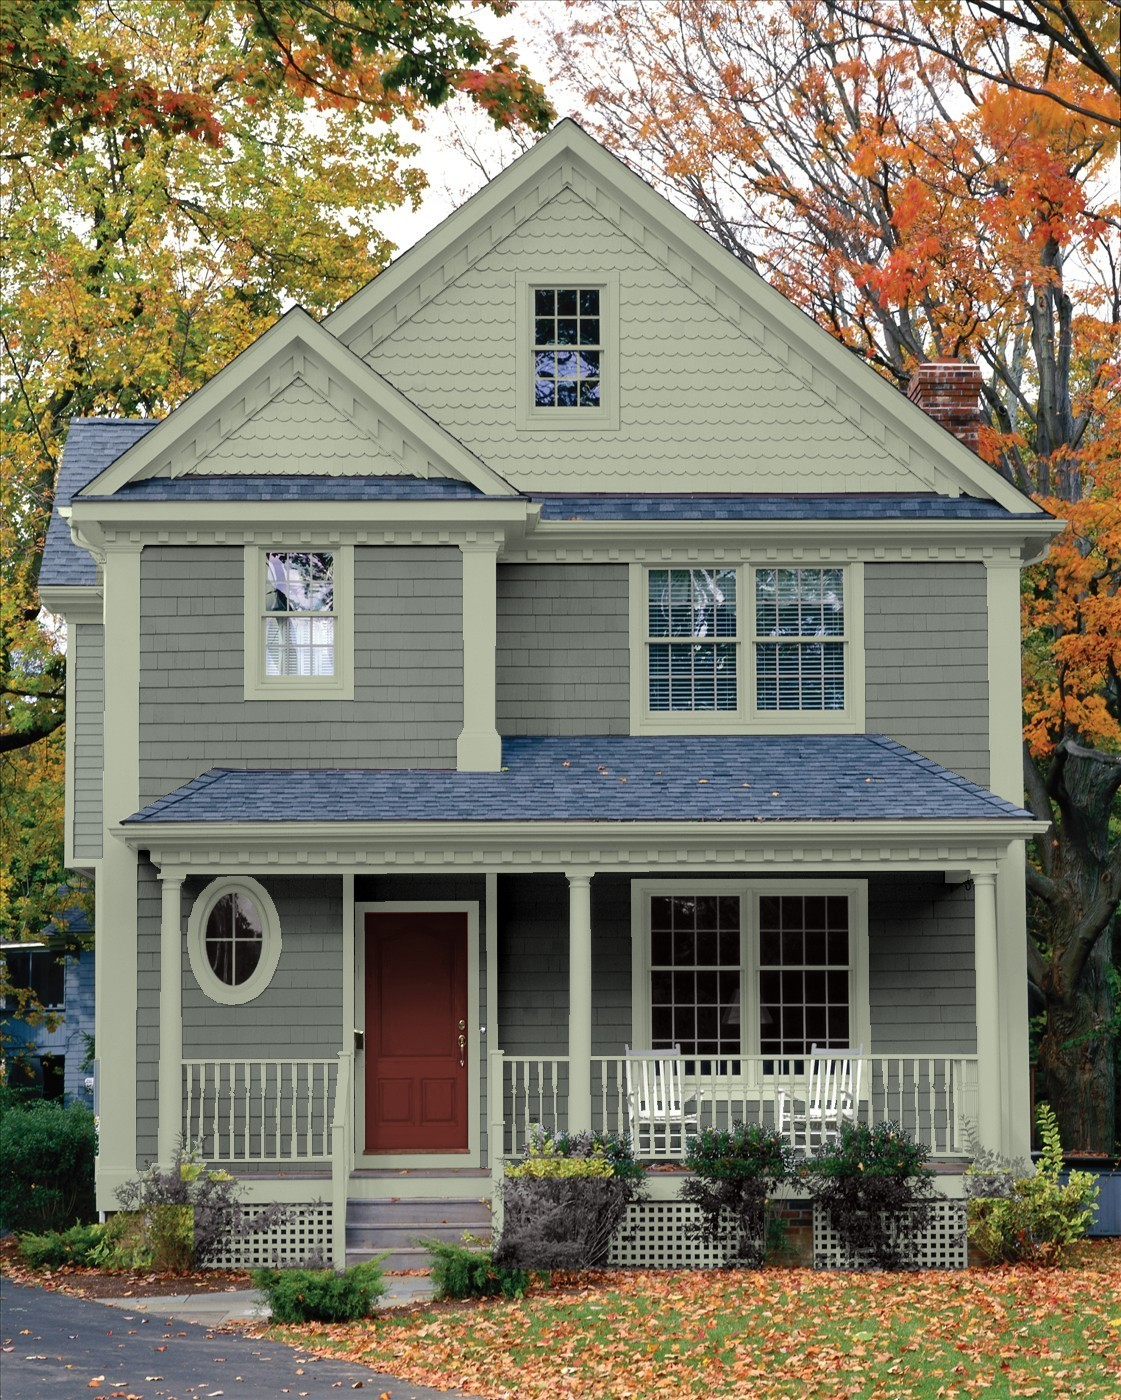 Living In Color: Tips On Choosing Exterior Color For Your Home